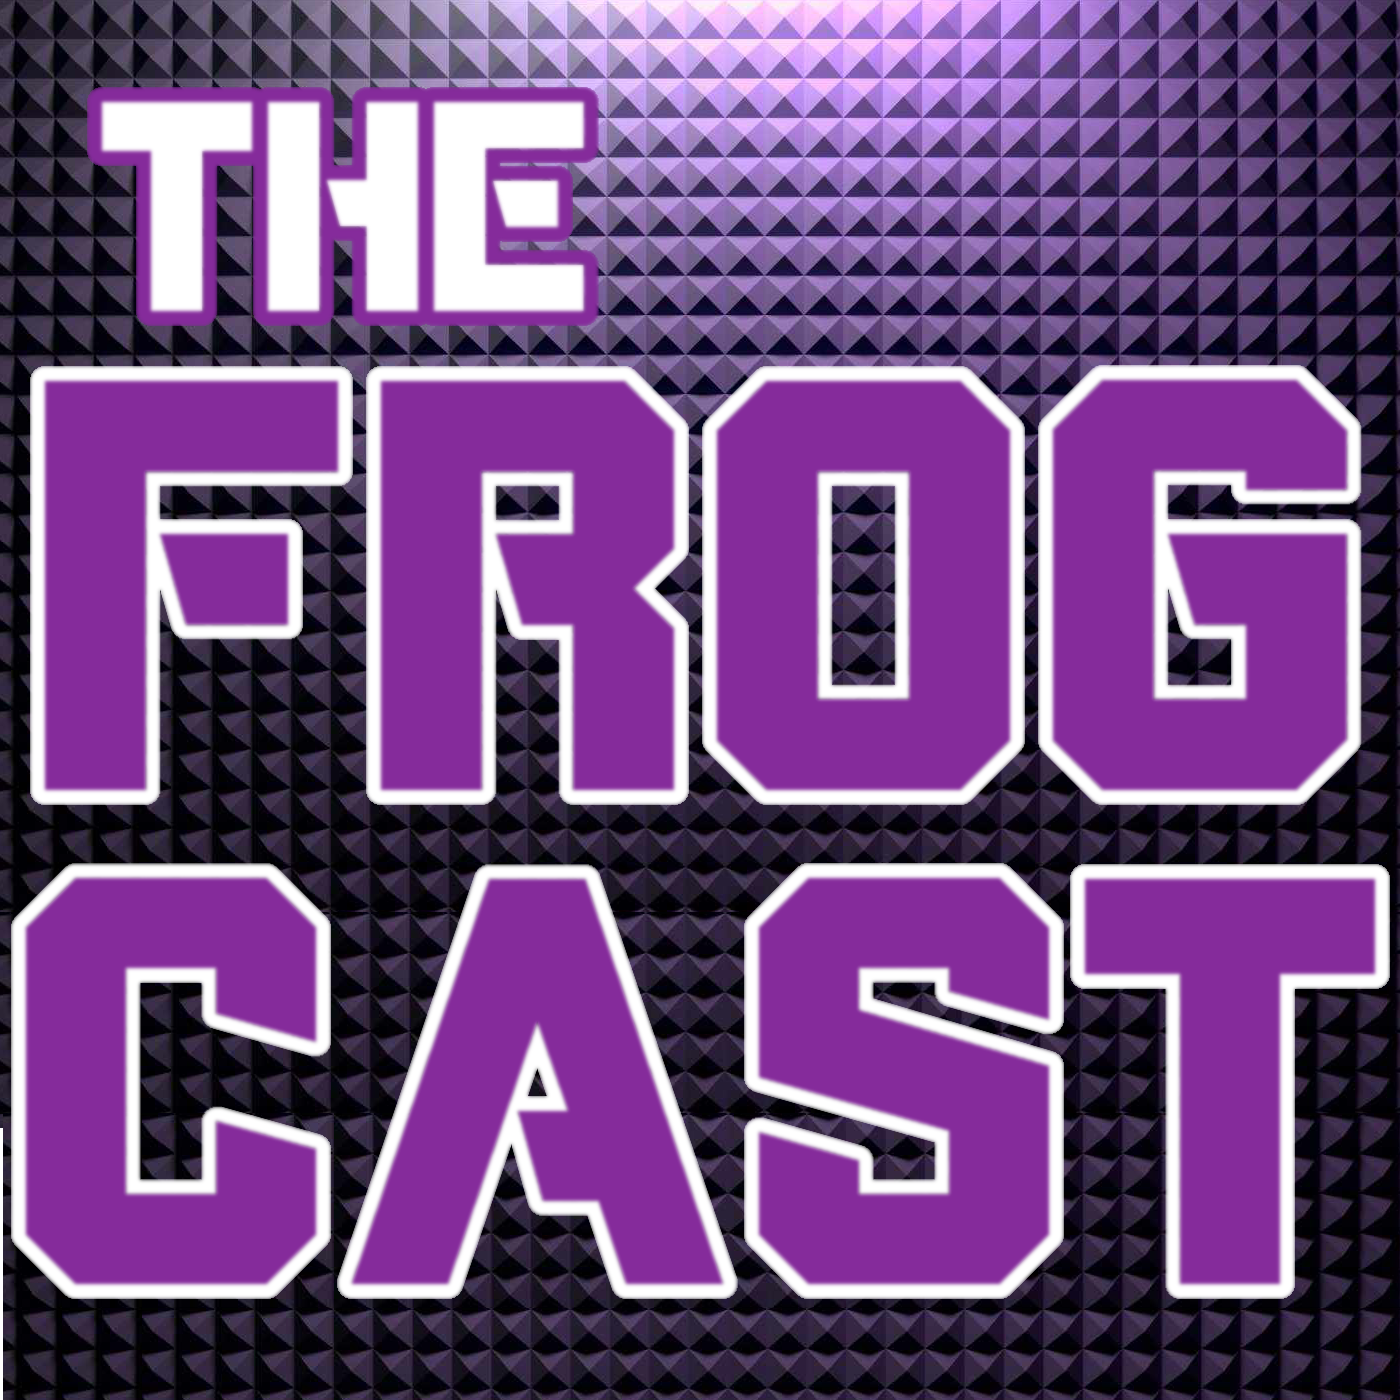 The FrogCast